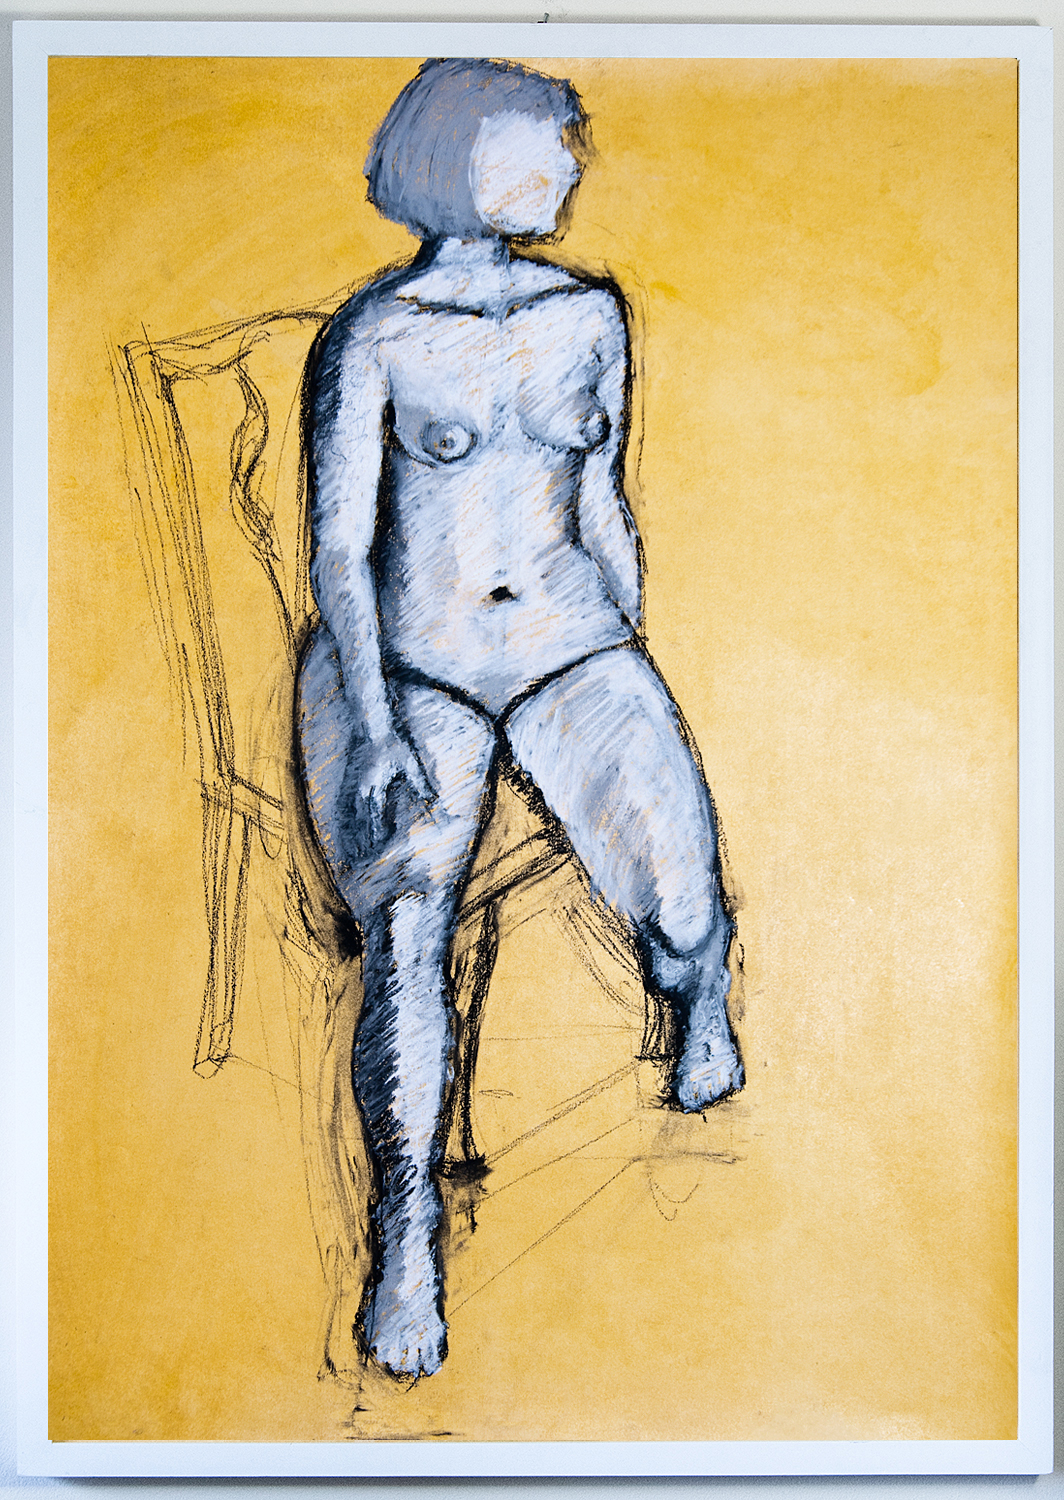 Helen I, 84x59 cm (framed), charcoal and chalk on shellac-primed paper